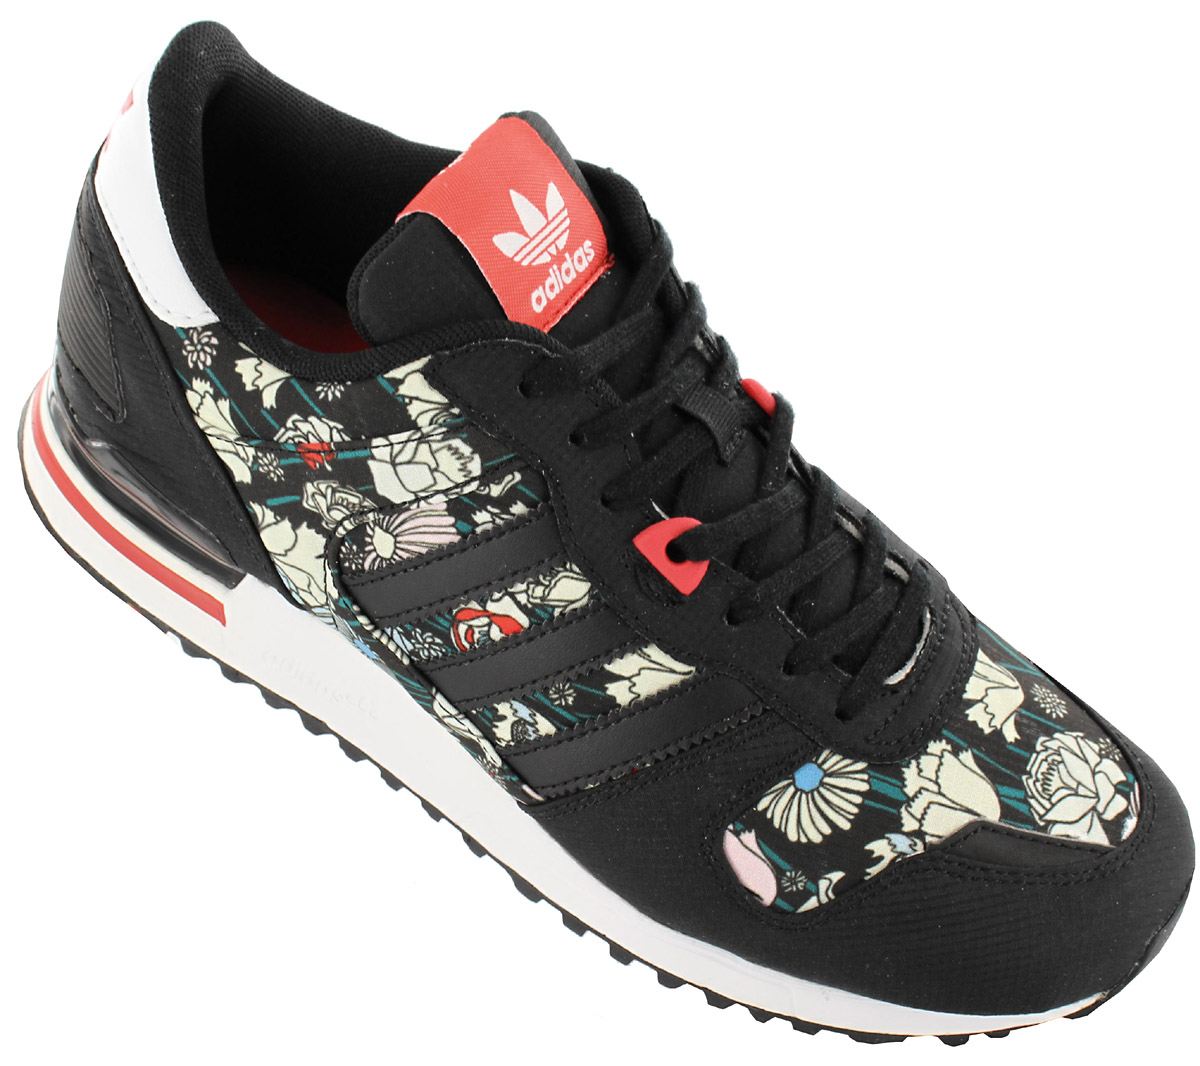 Details about Adidas Originals Zx 700 W Women's Sneaker Floral Design BA9313 Sneakers